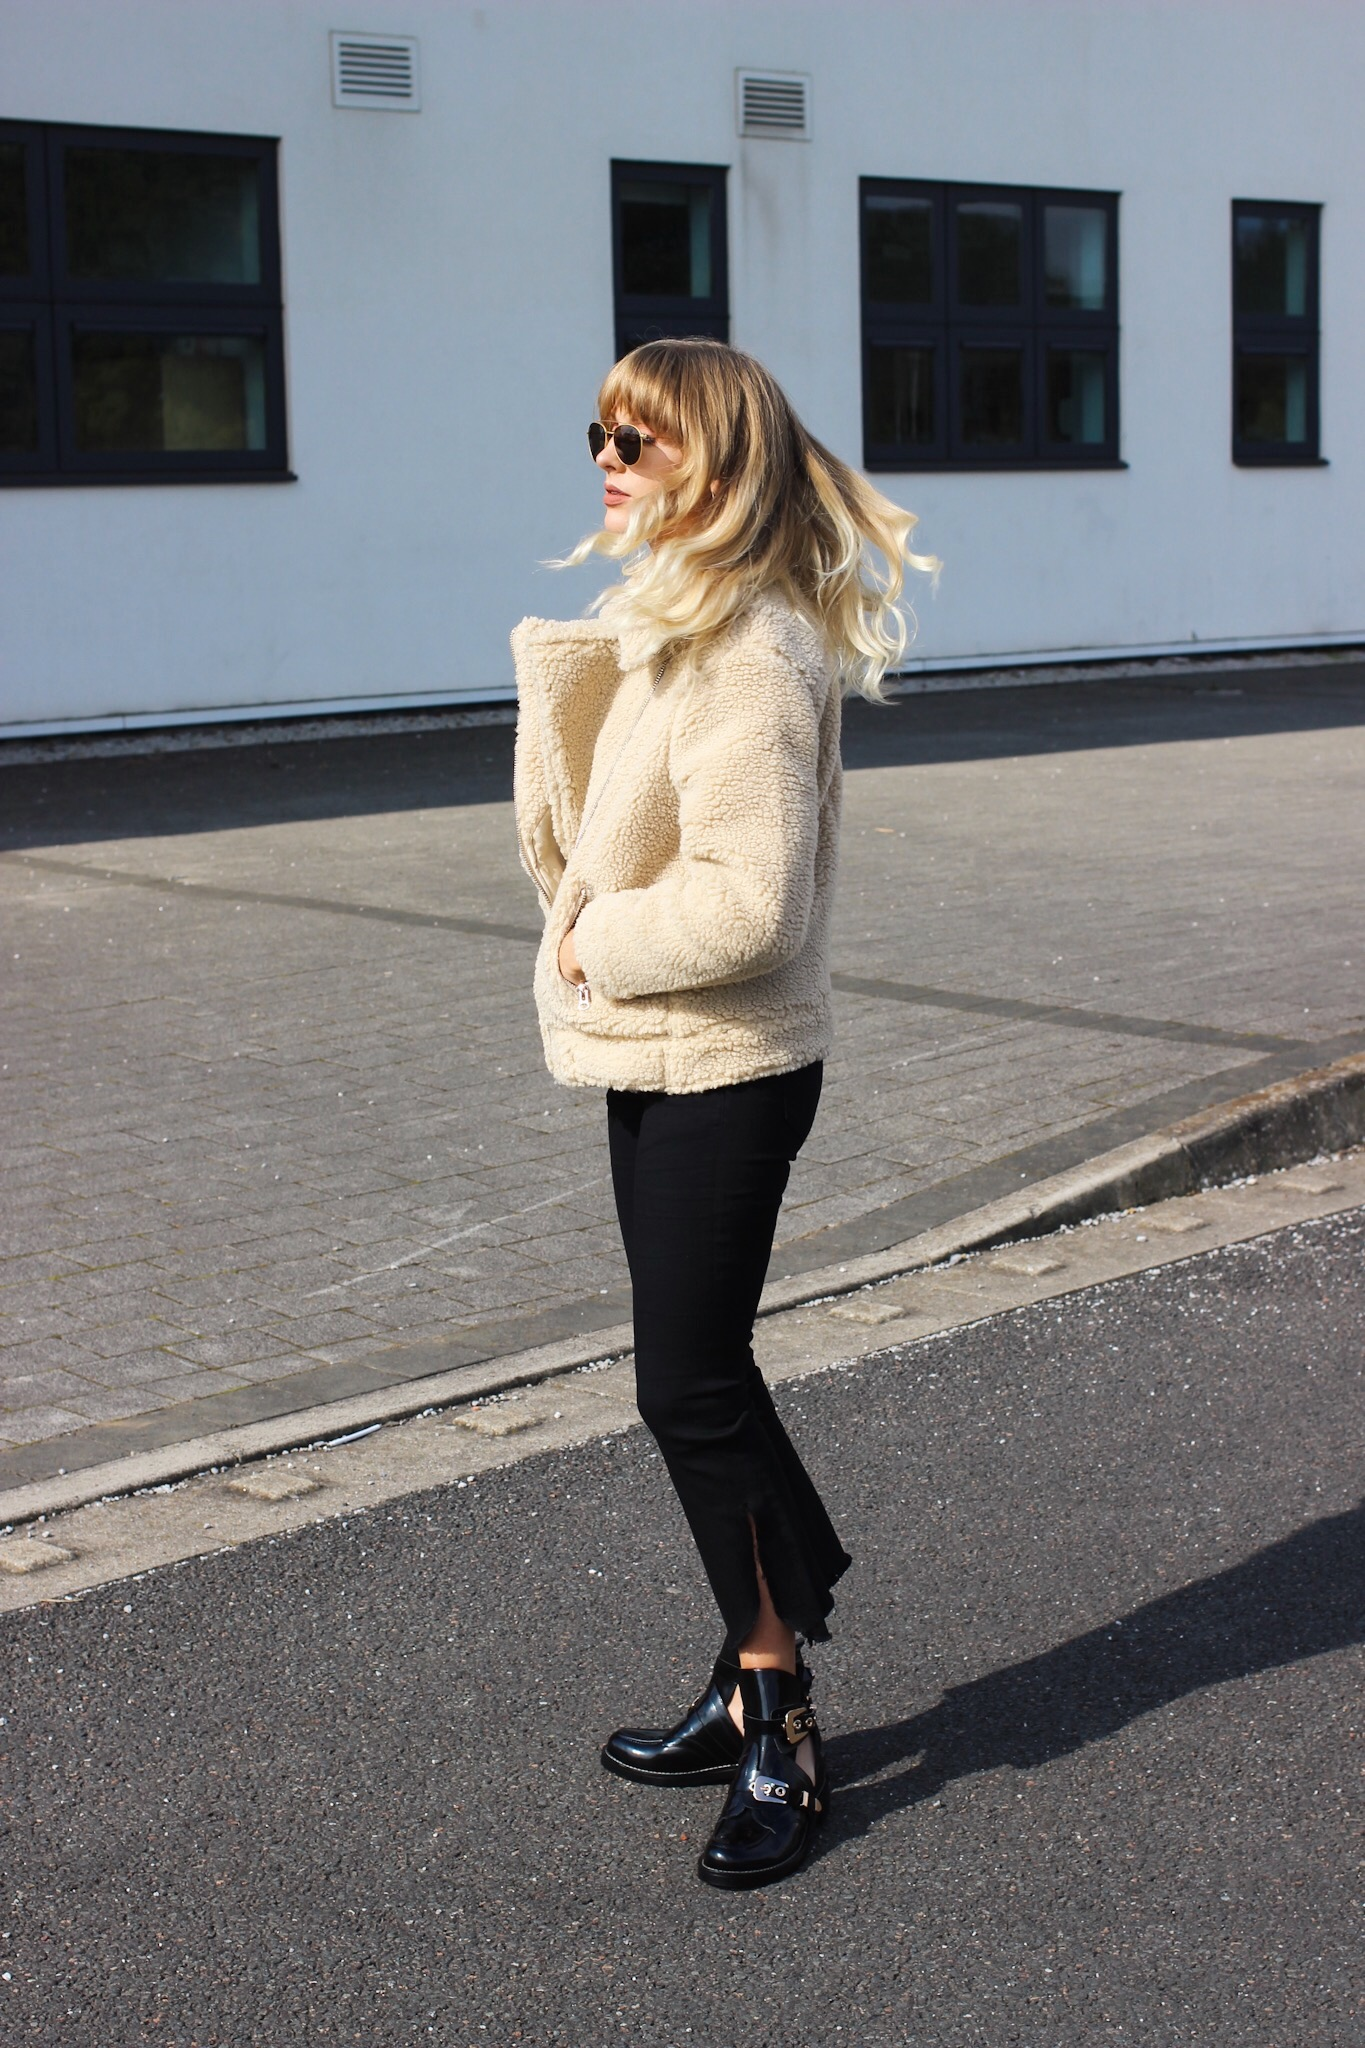 shearling teddy coats for autumn winter from H&M street style